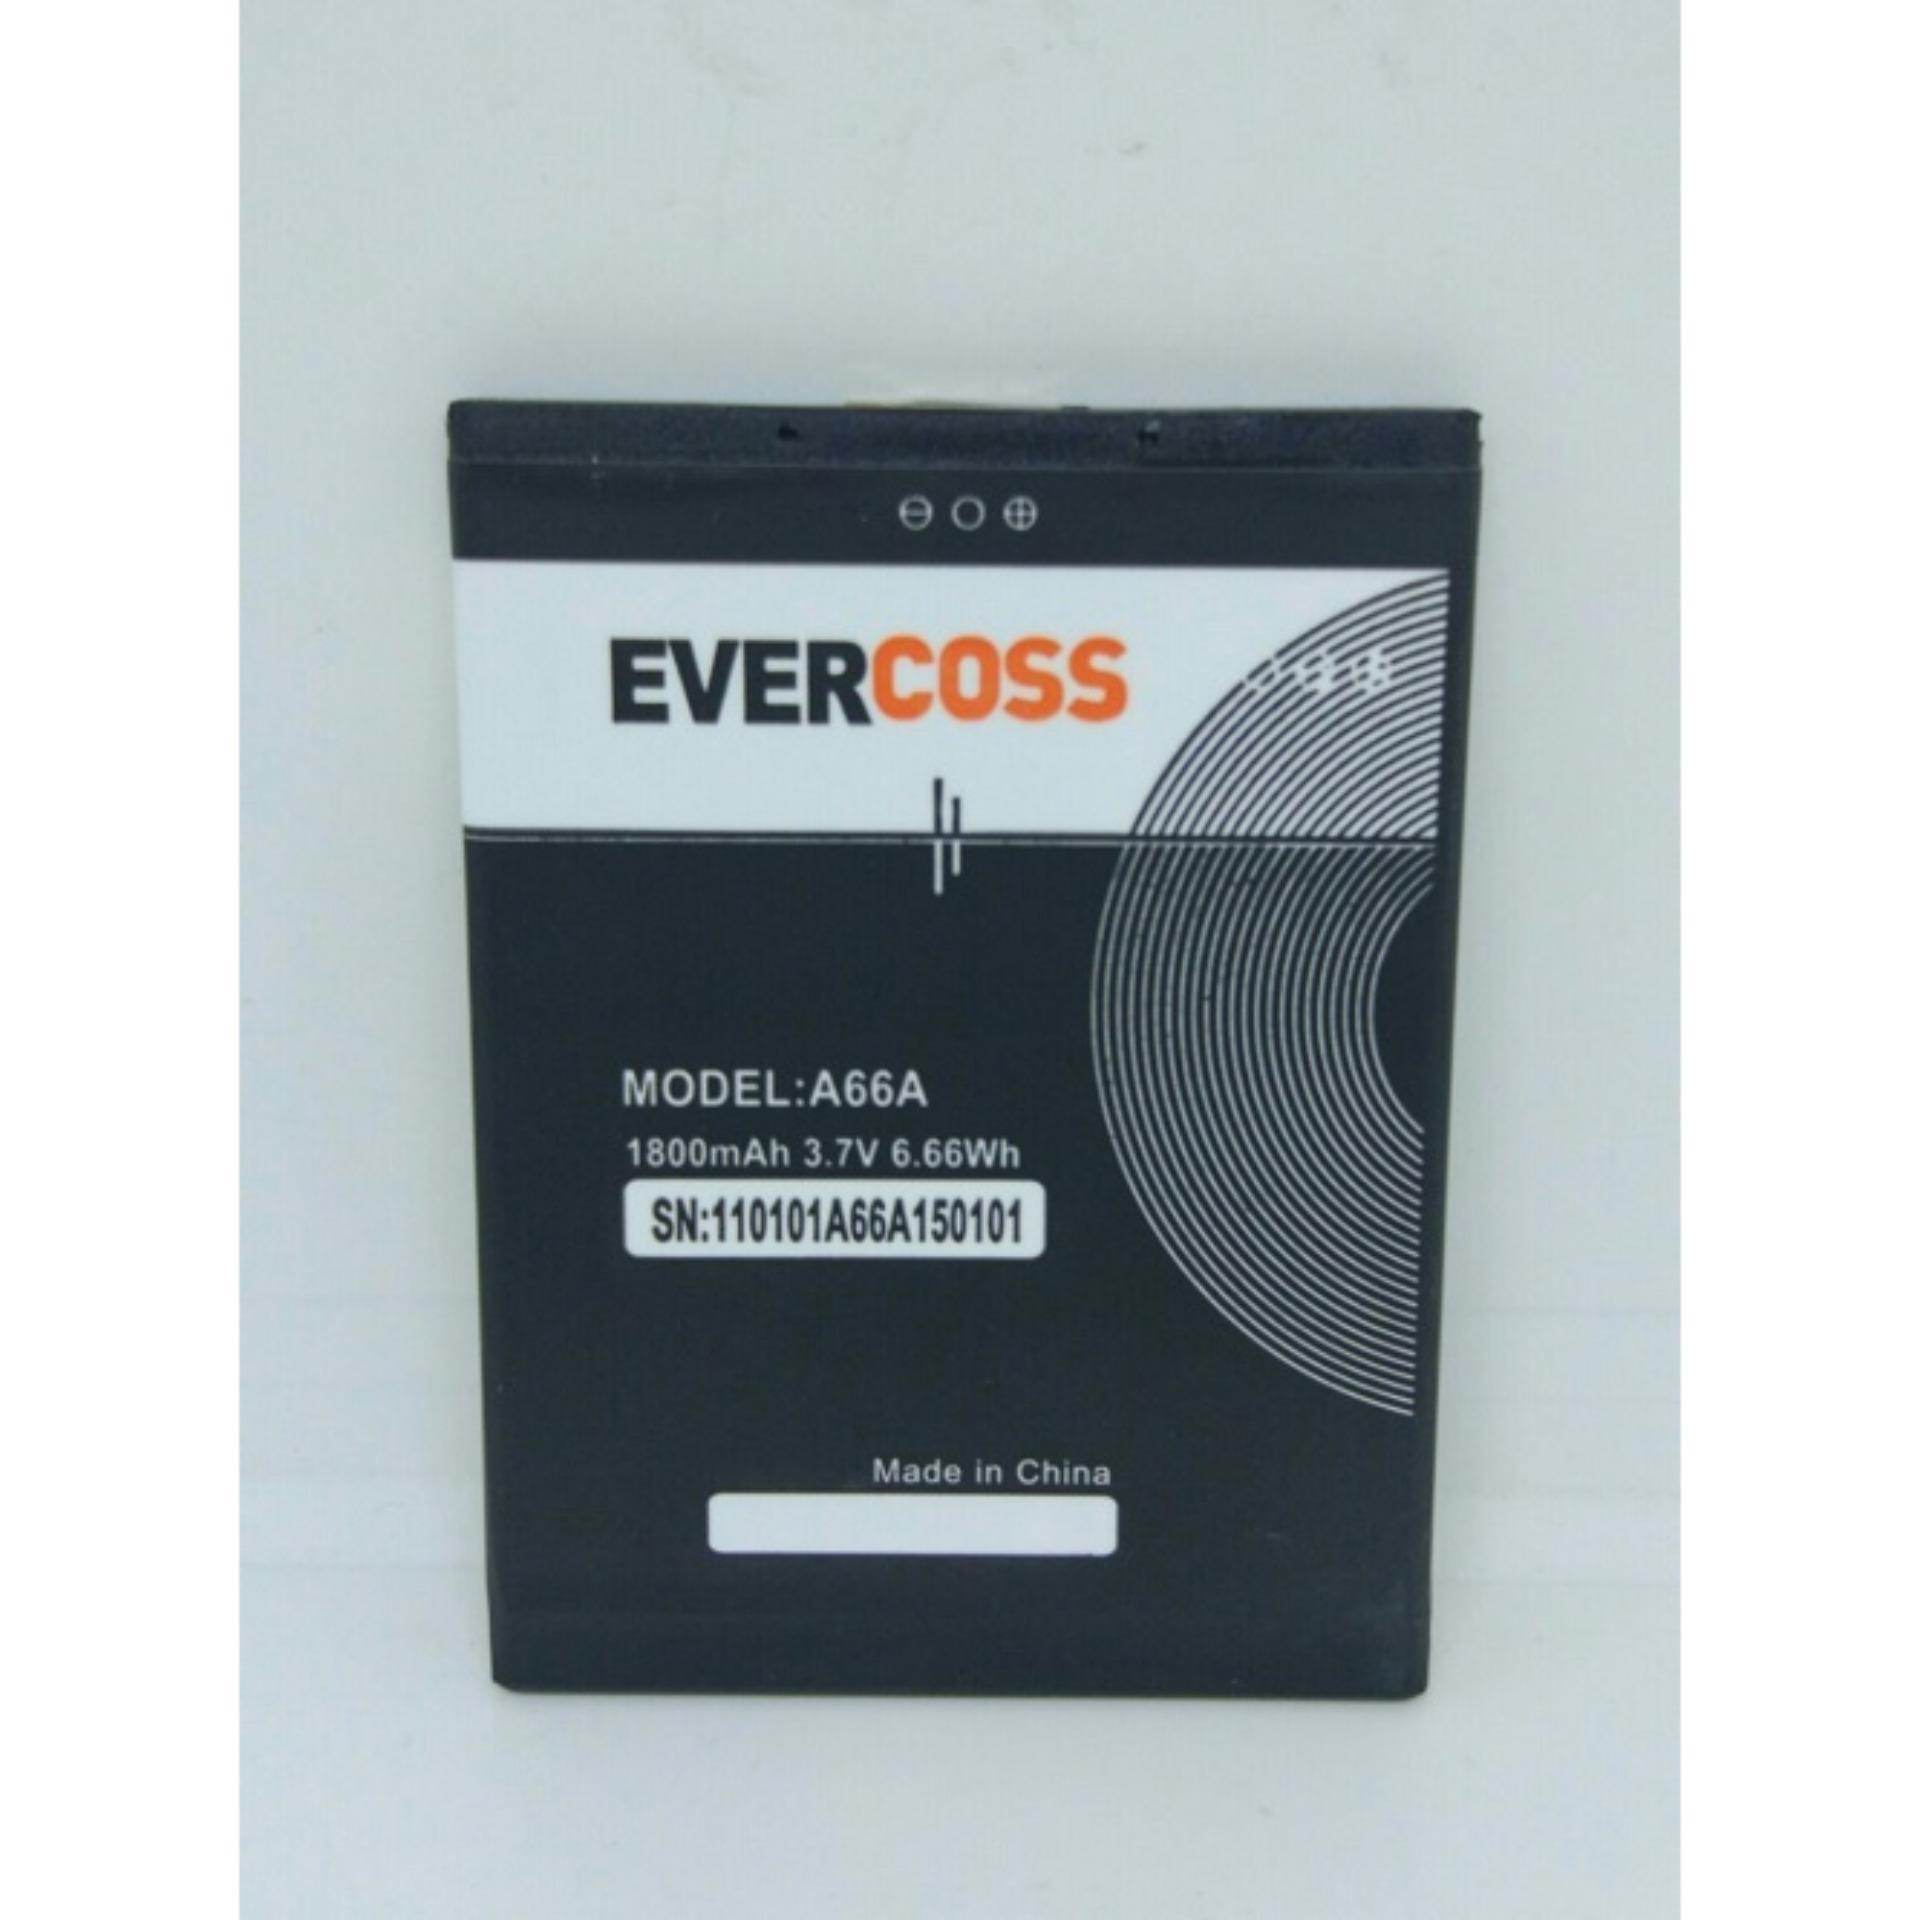 Evercross A74b Battery Baterai Original 99 Cross Daftar Harga Evercoss A66a